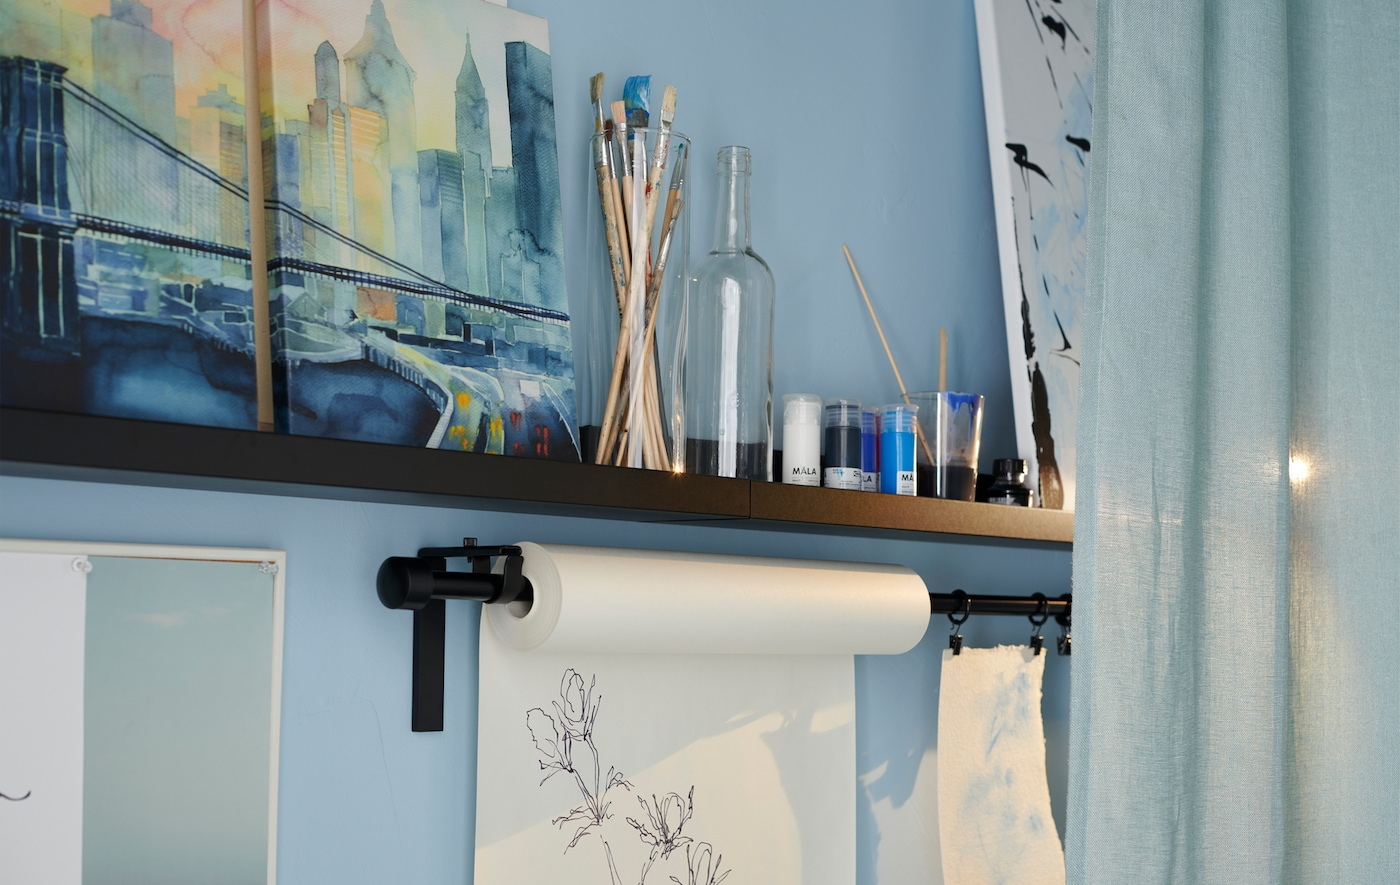 An IKEA MOSSLANDA black picture ledge with brushes, jars and art on show.